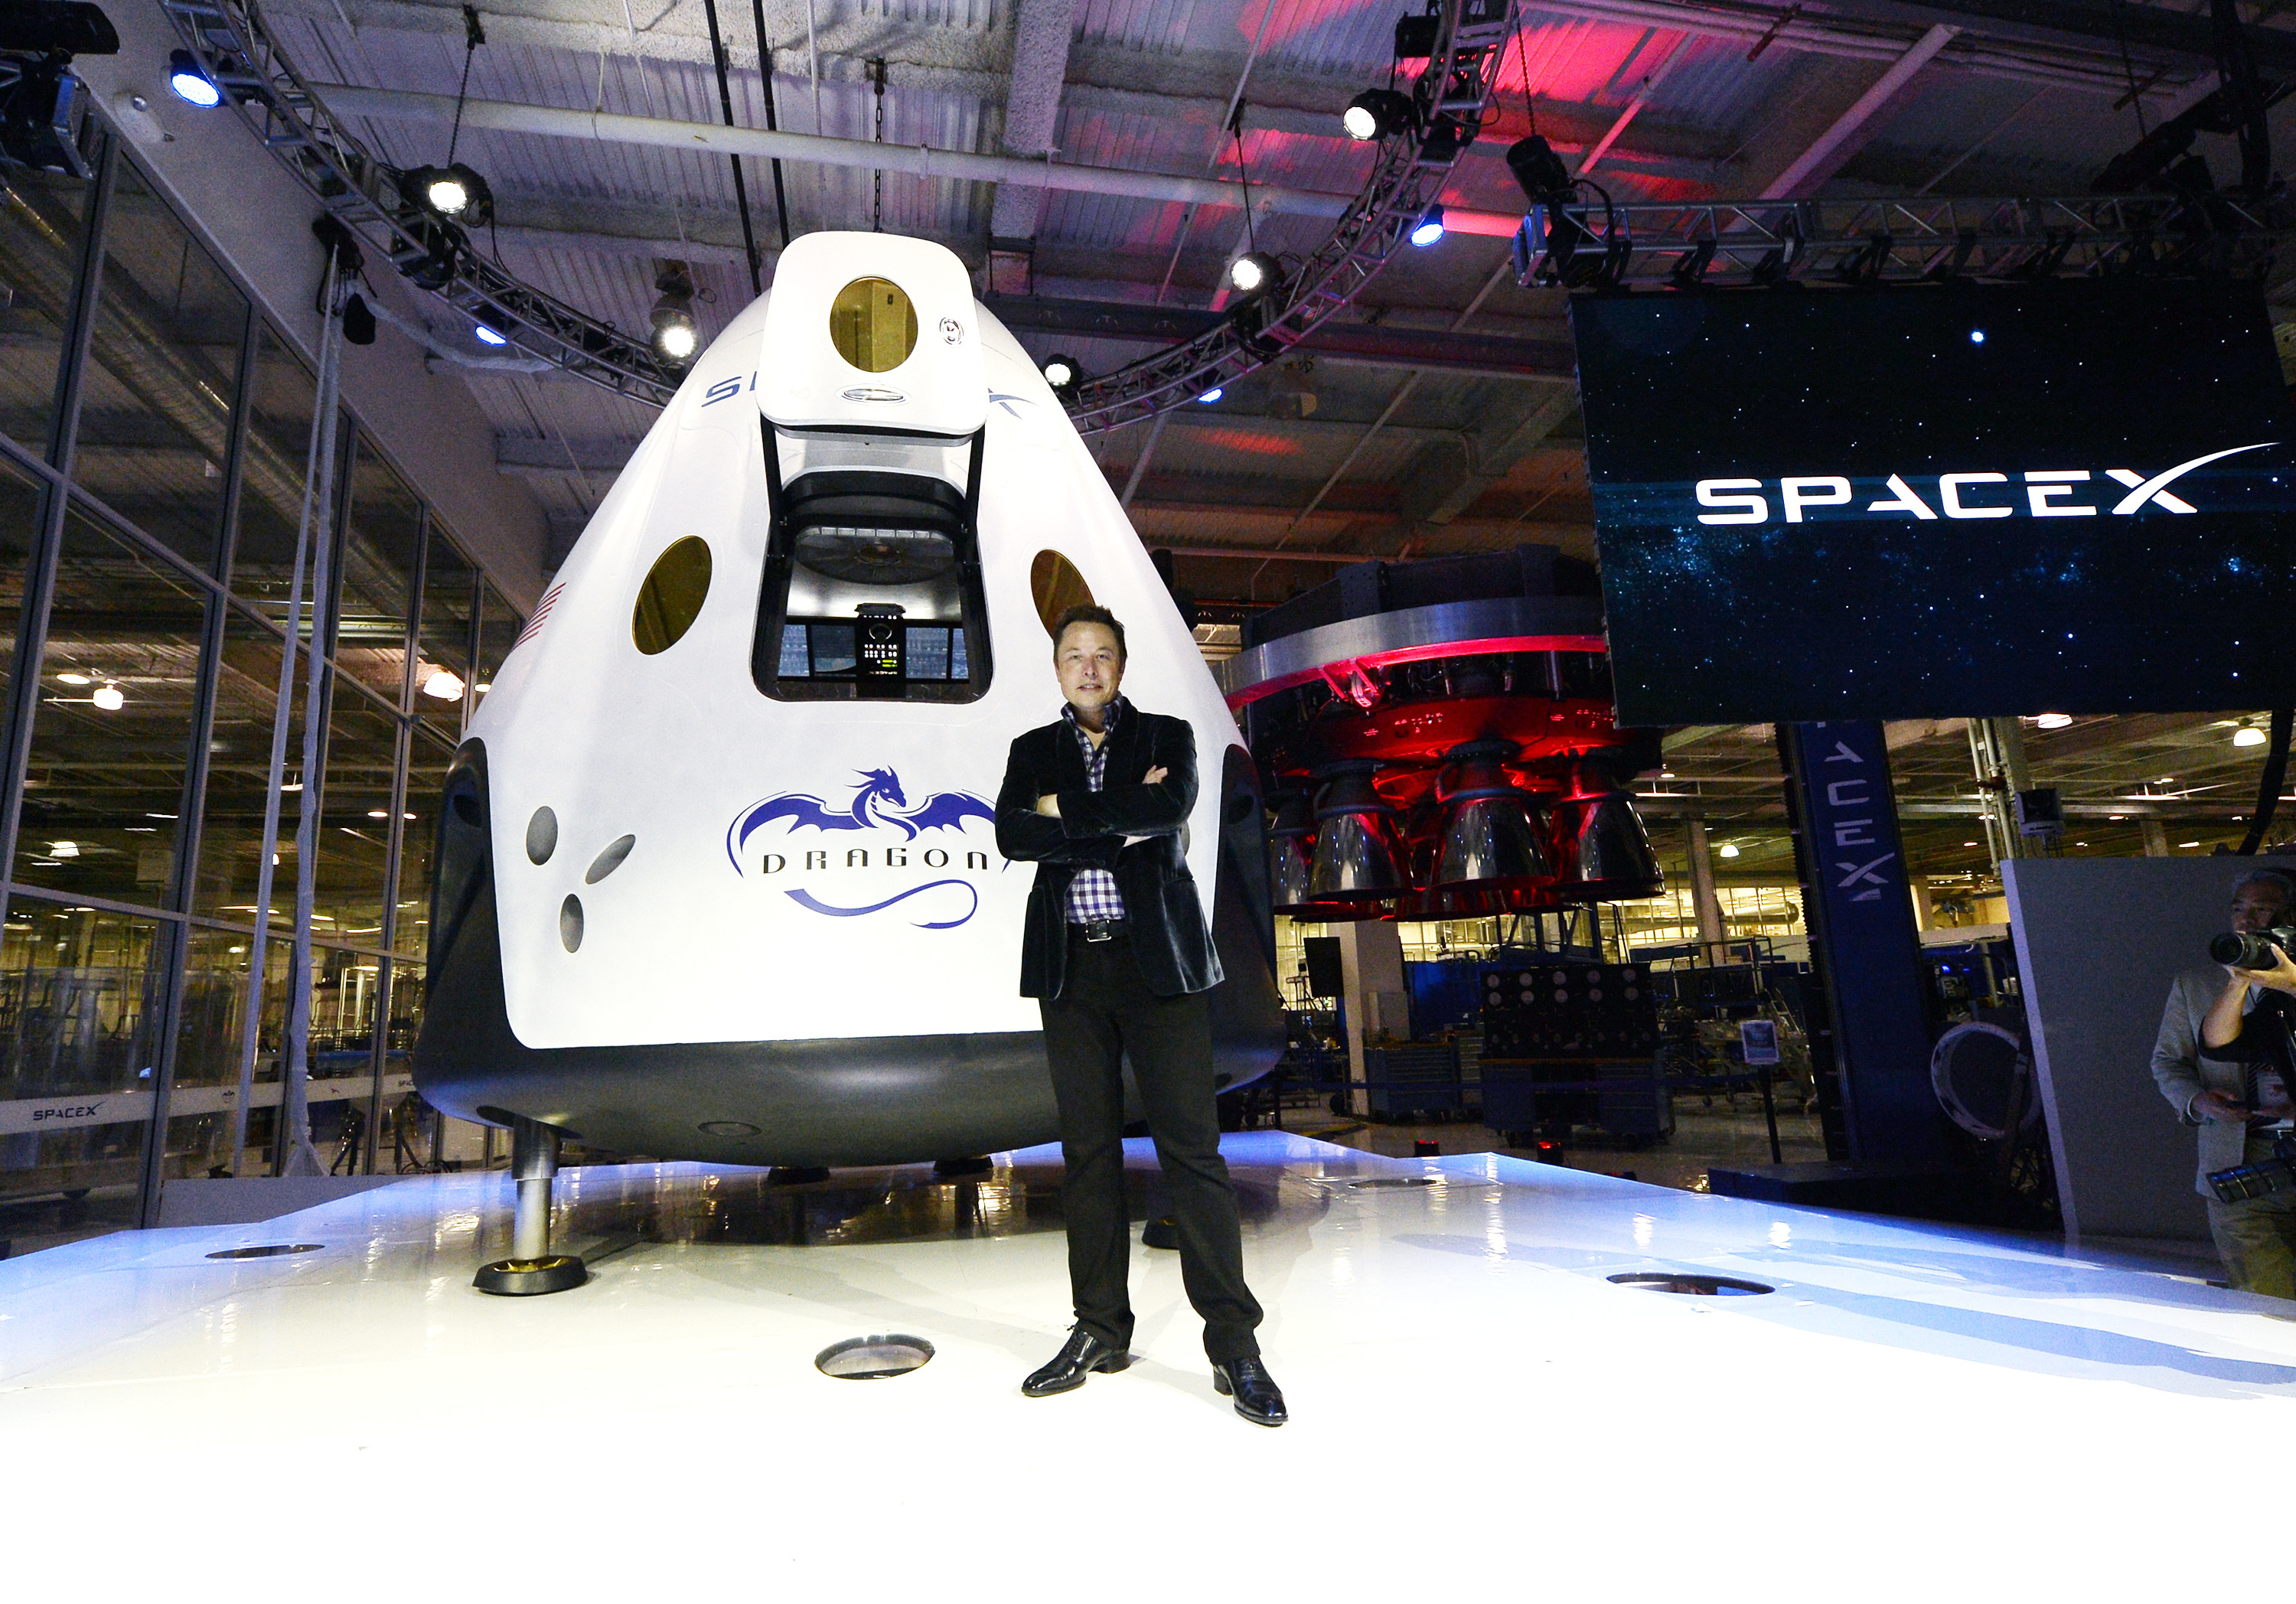 SpaceX to send citizens beyond moon in 2018